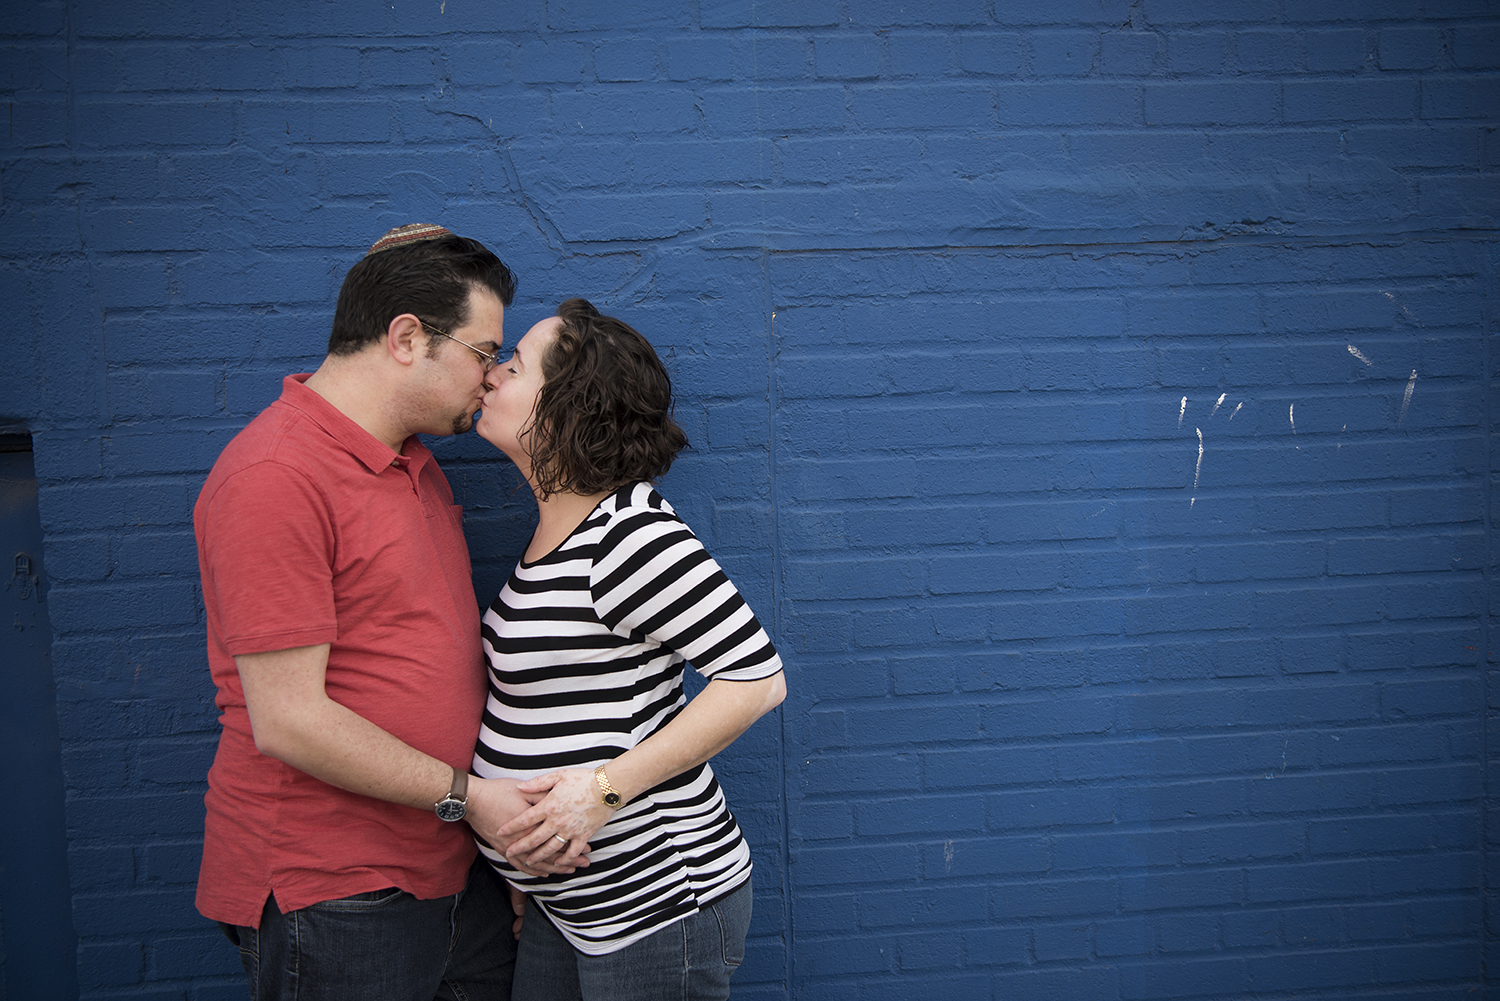 maternity session at Coney Island, family portraits